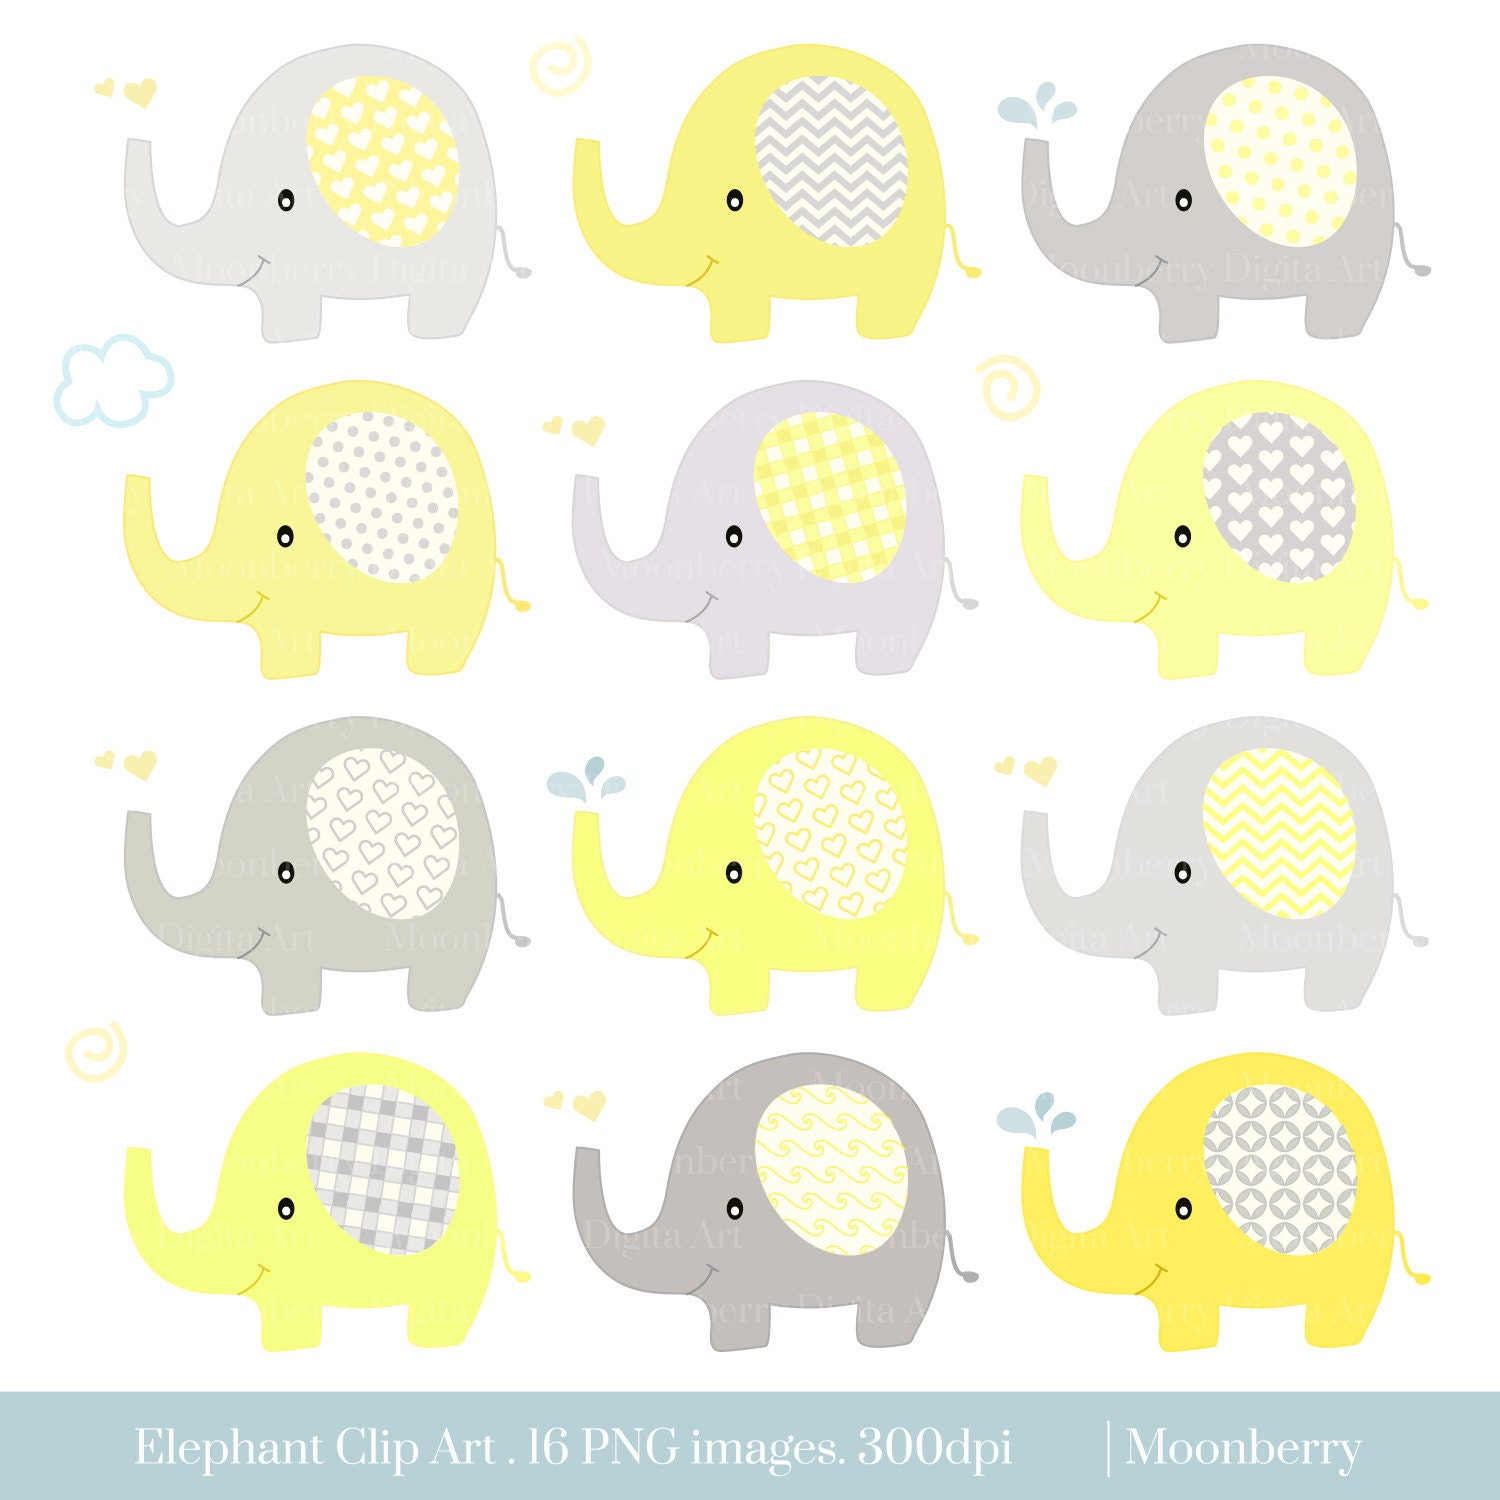 Elephant Clip Art ELEPHANTS CLPART Baby Shower